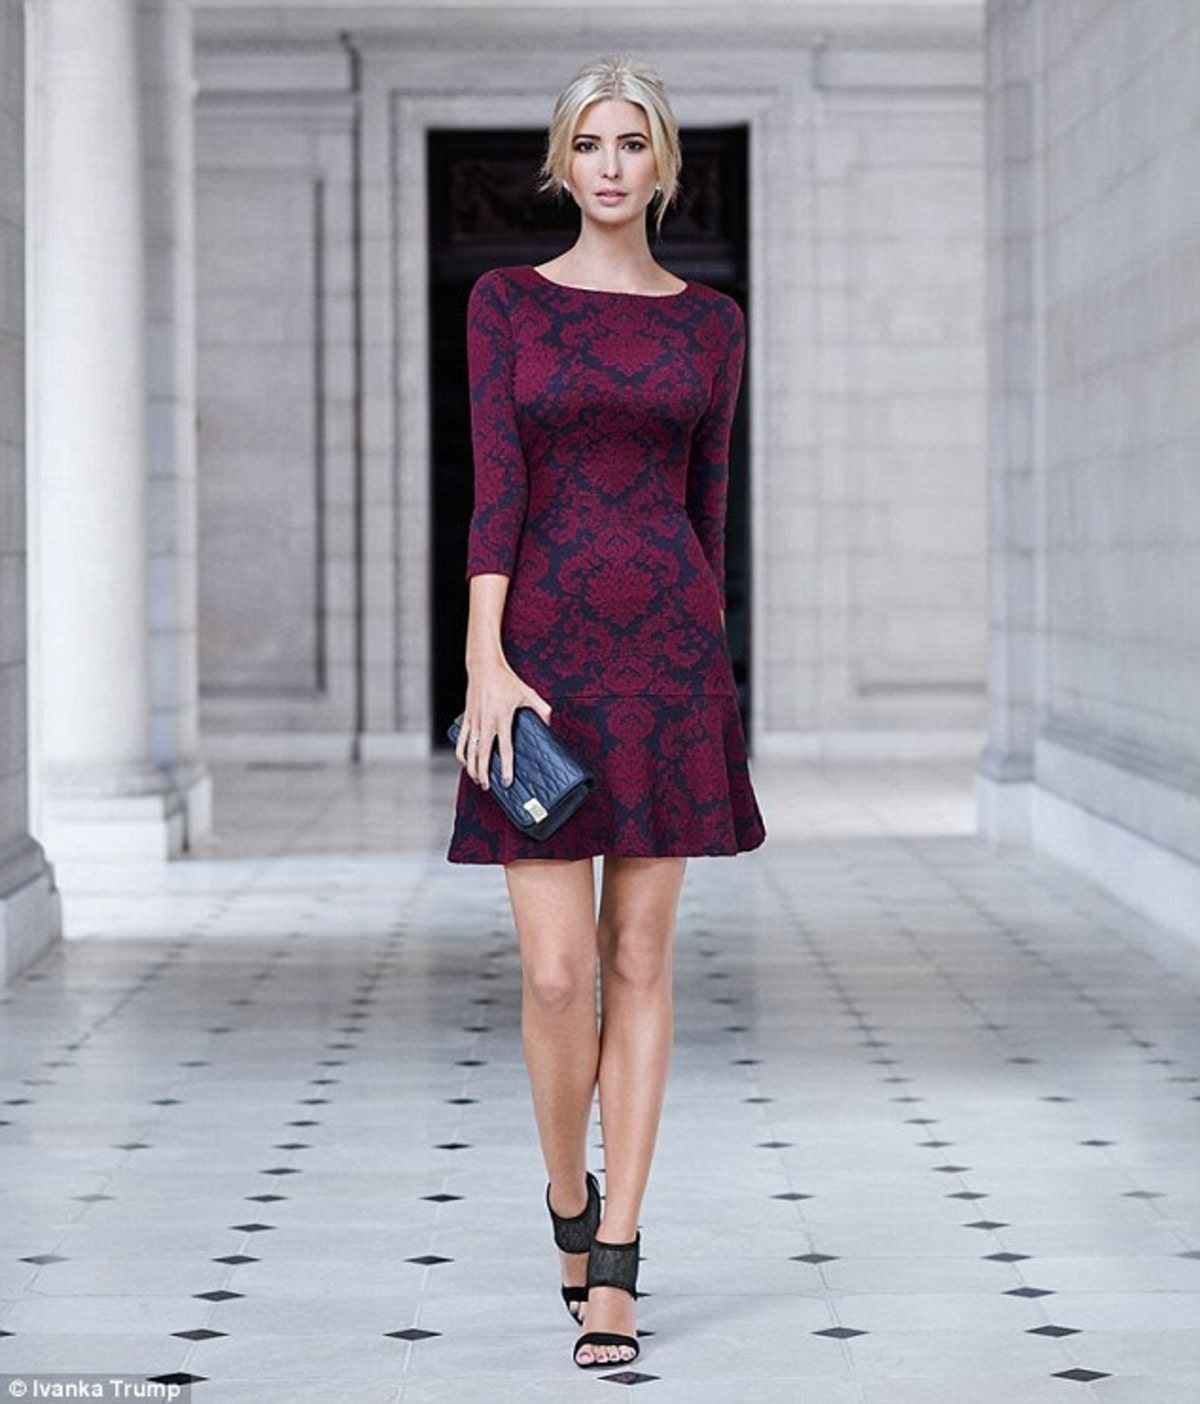 2C25F9AD00000578-3229289-Making_an_entrance_Ivanka_Trump_33_looks_absolutely_stunning_in_-m-13_1441894921055